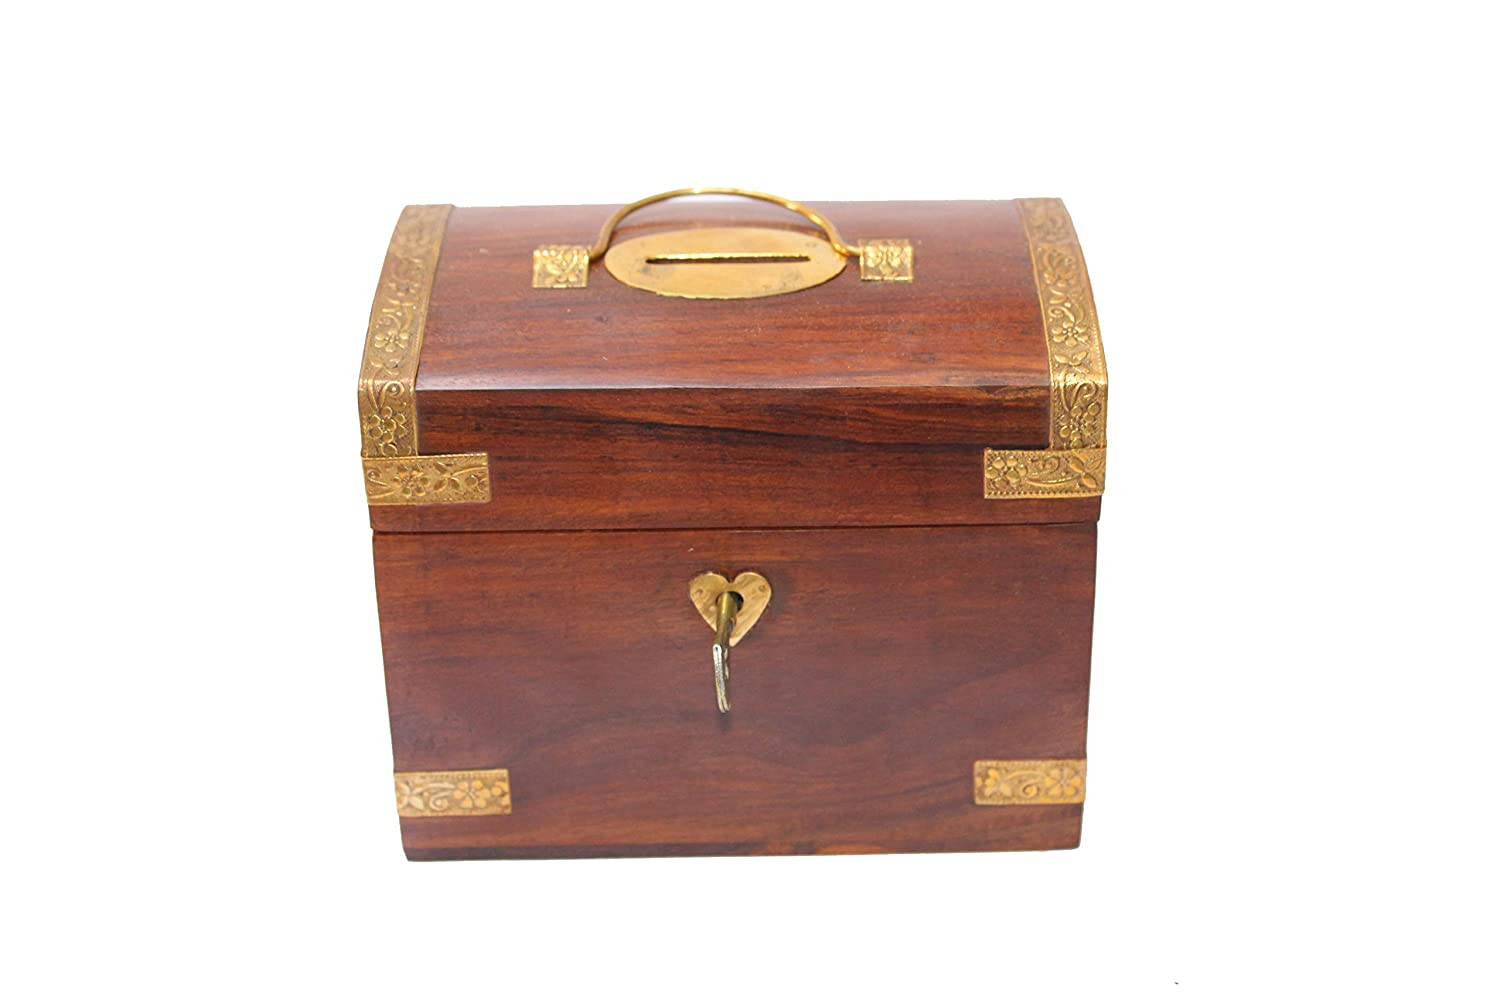 Sheesham wood Wooden Treasure Chest Design Money Bank/Coin Saving Box /Piggy Bank /Gifts for Kids, Girls, Boys & Adults (Brown , 5.25x3.25x4.25 Inches)